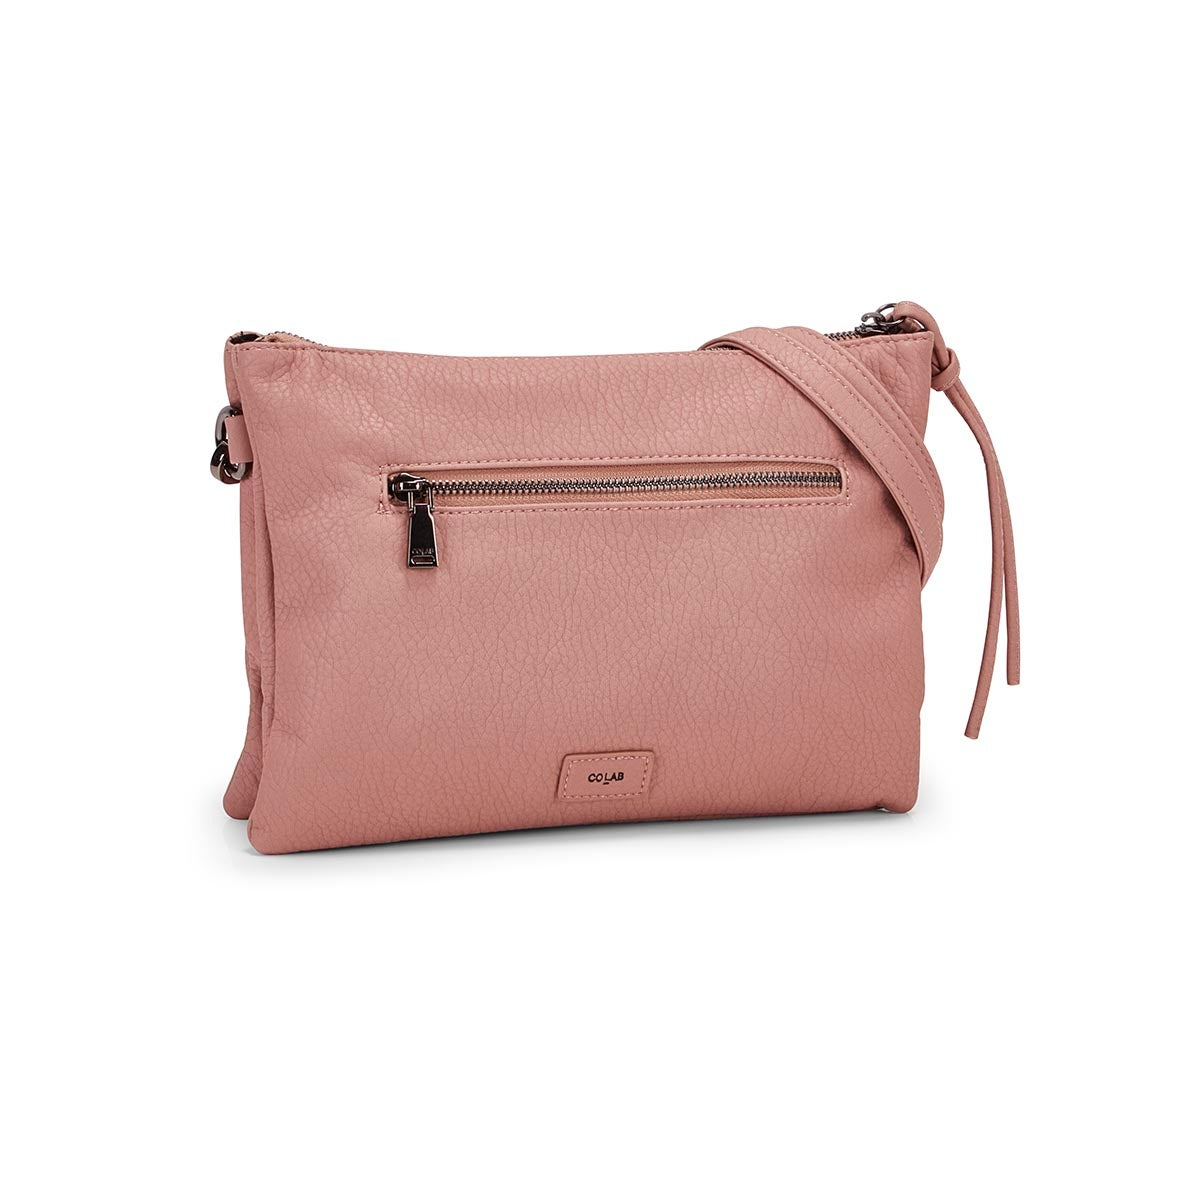 Lds cotton candy clutch crossbody bag